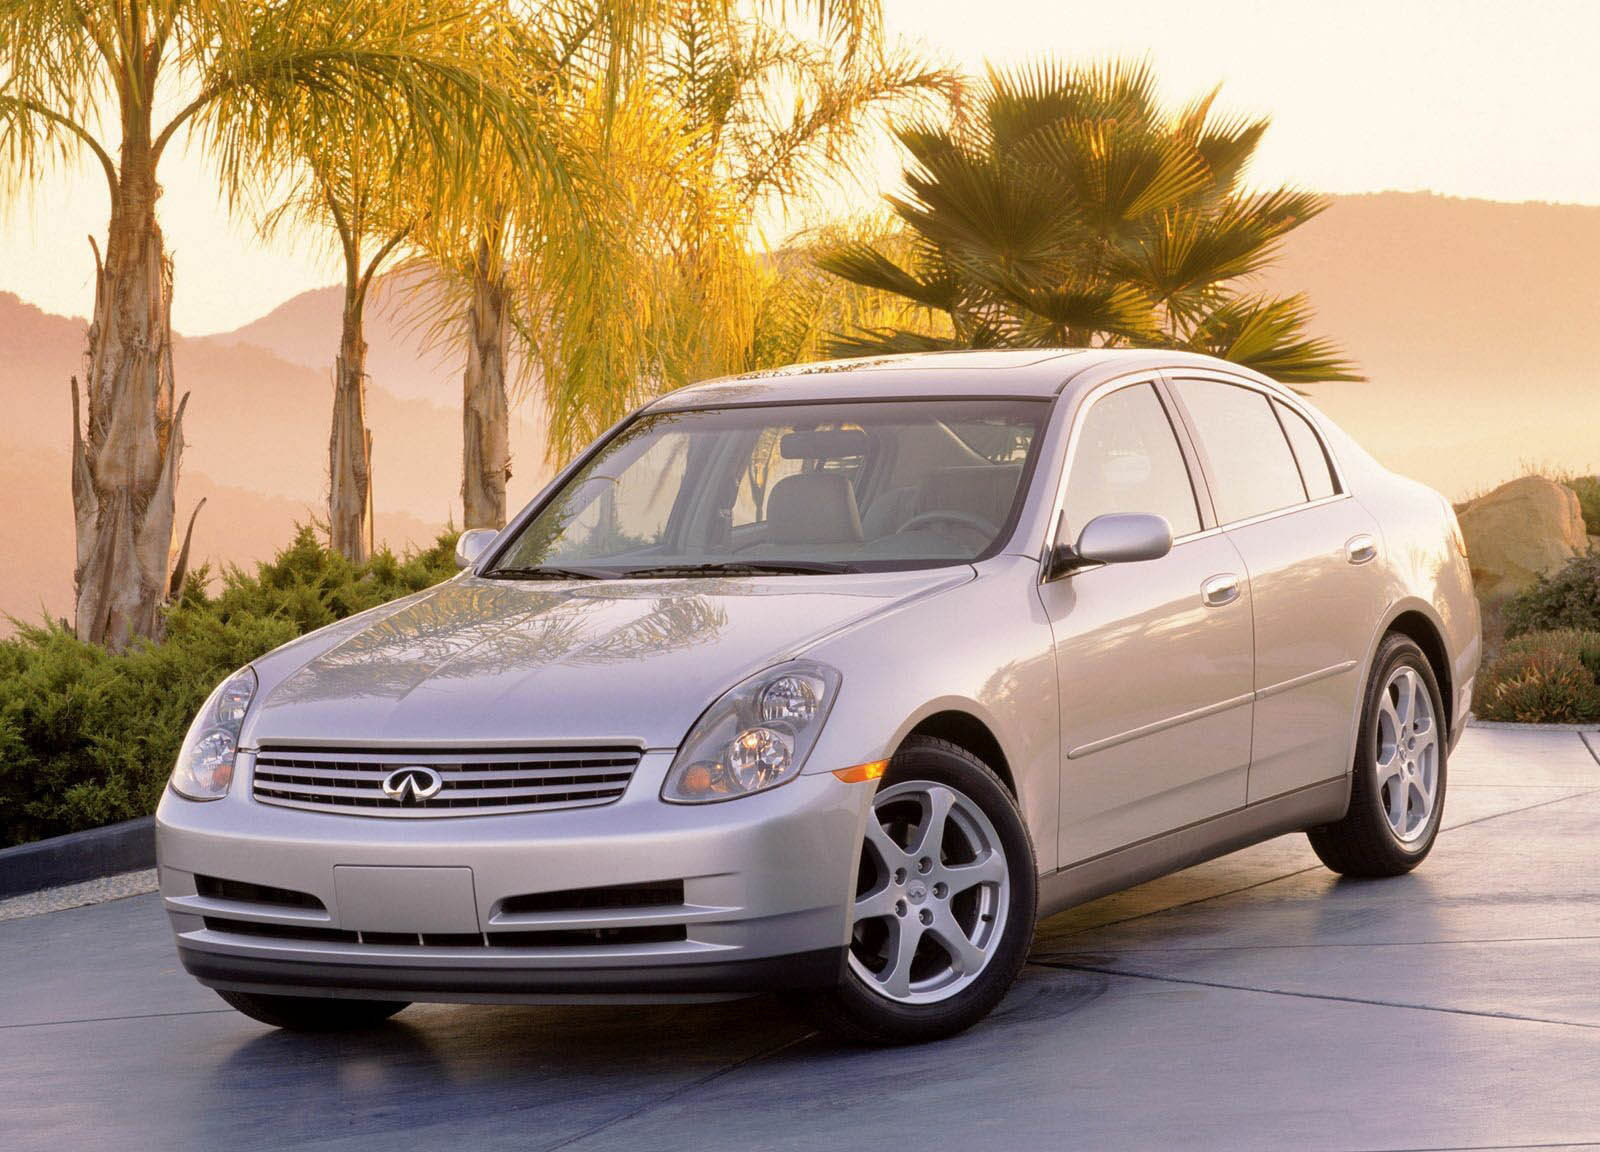 2003 infiniti g35 review top speed. Black Bedroom Furniture Sets. Home Design Ideas